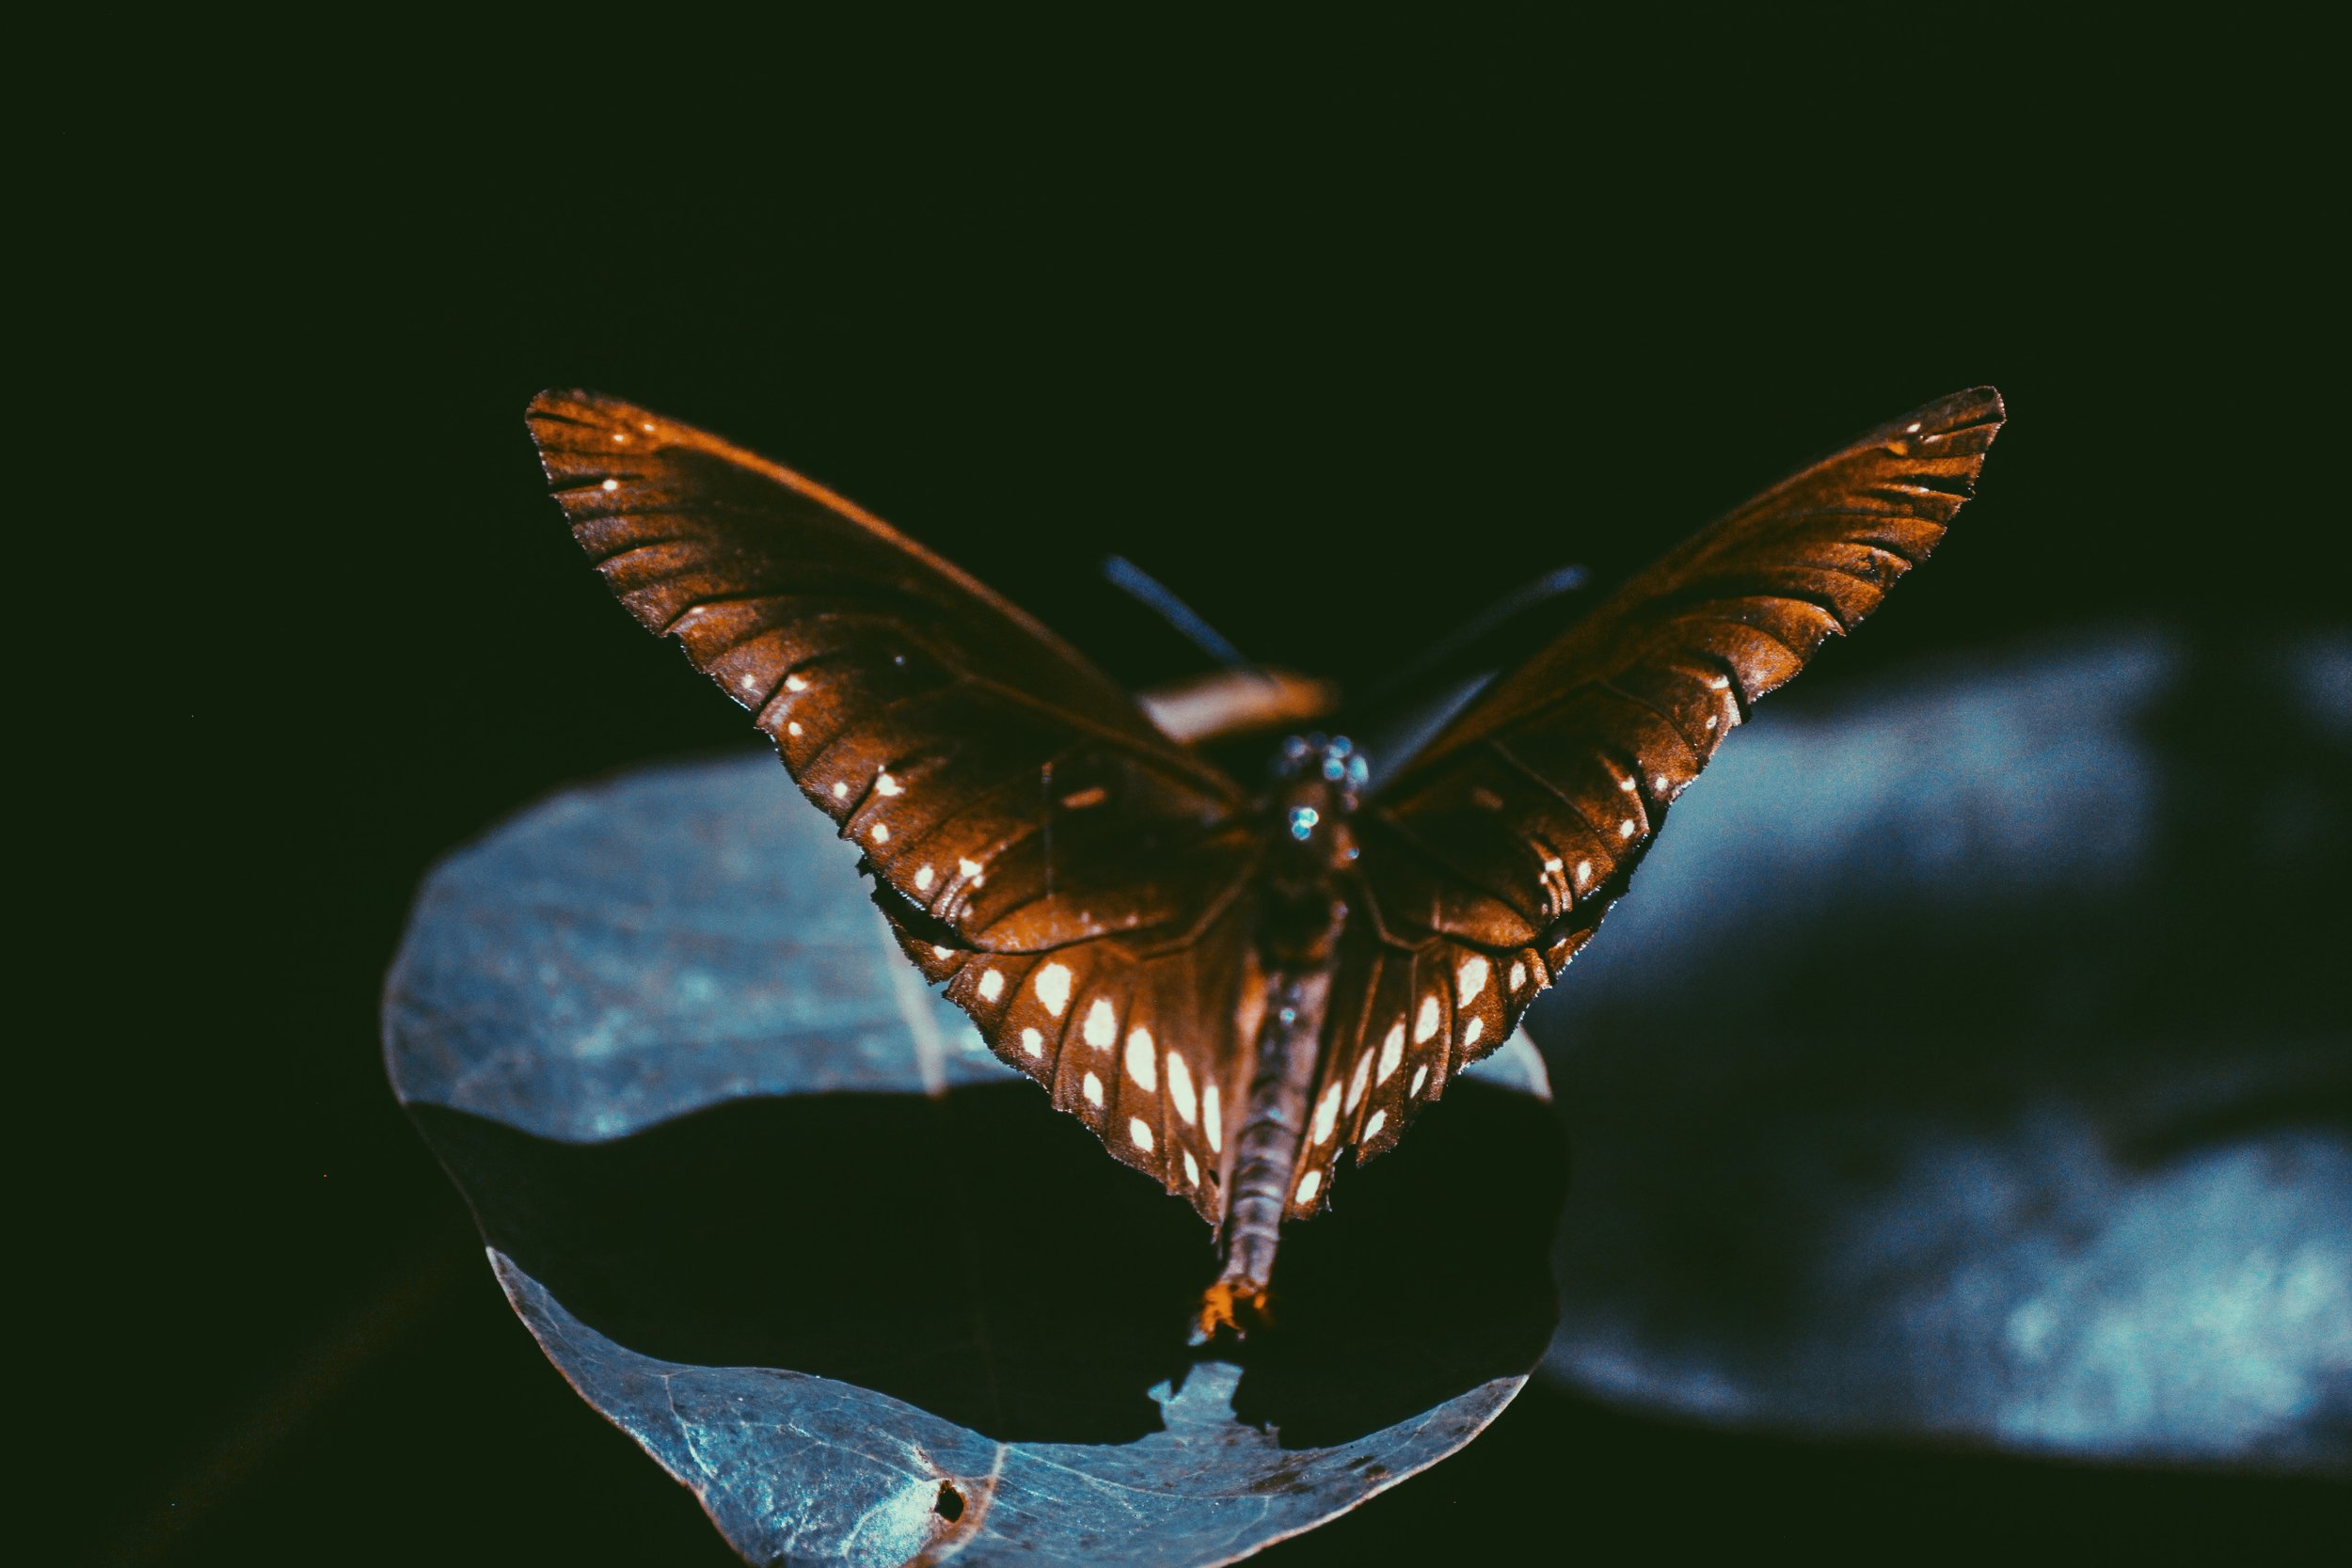 butterfly-close-up-dark-1385761.jpg